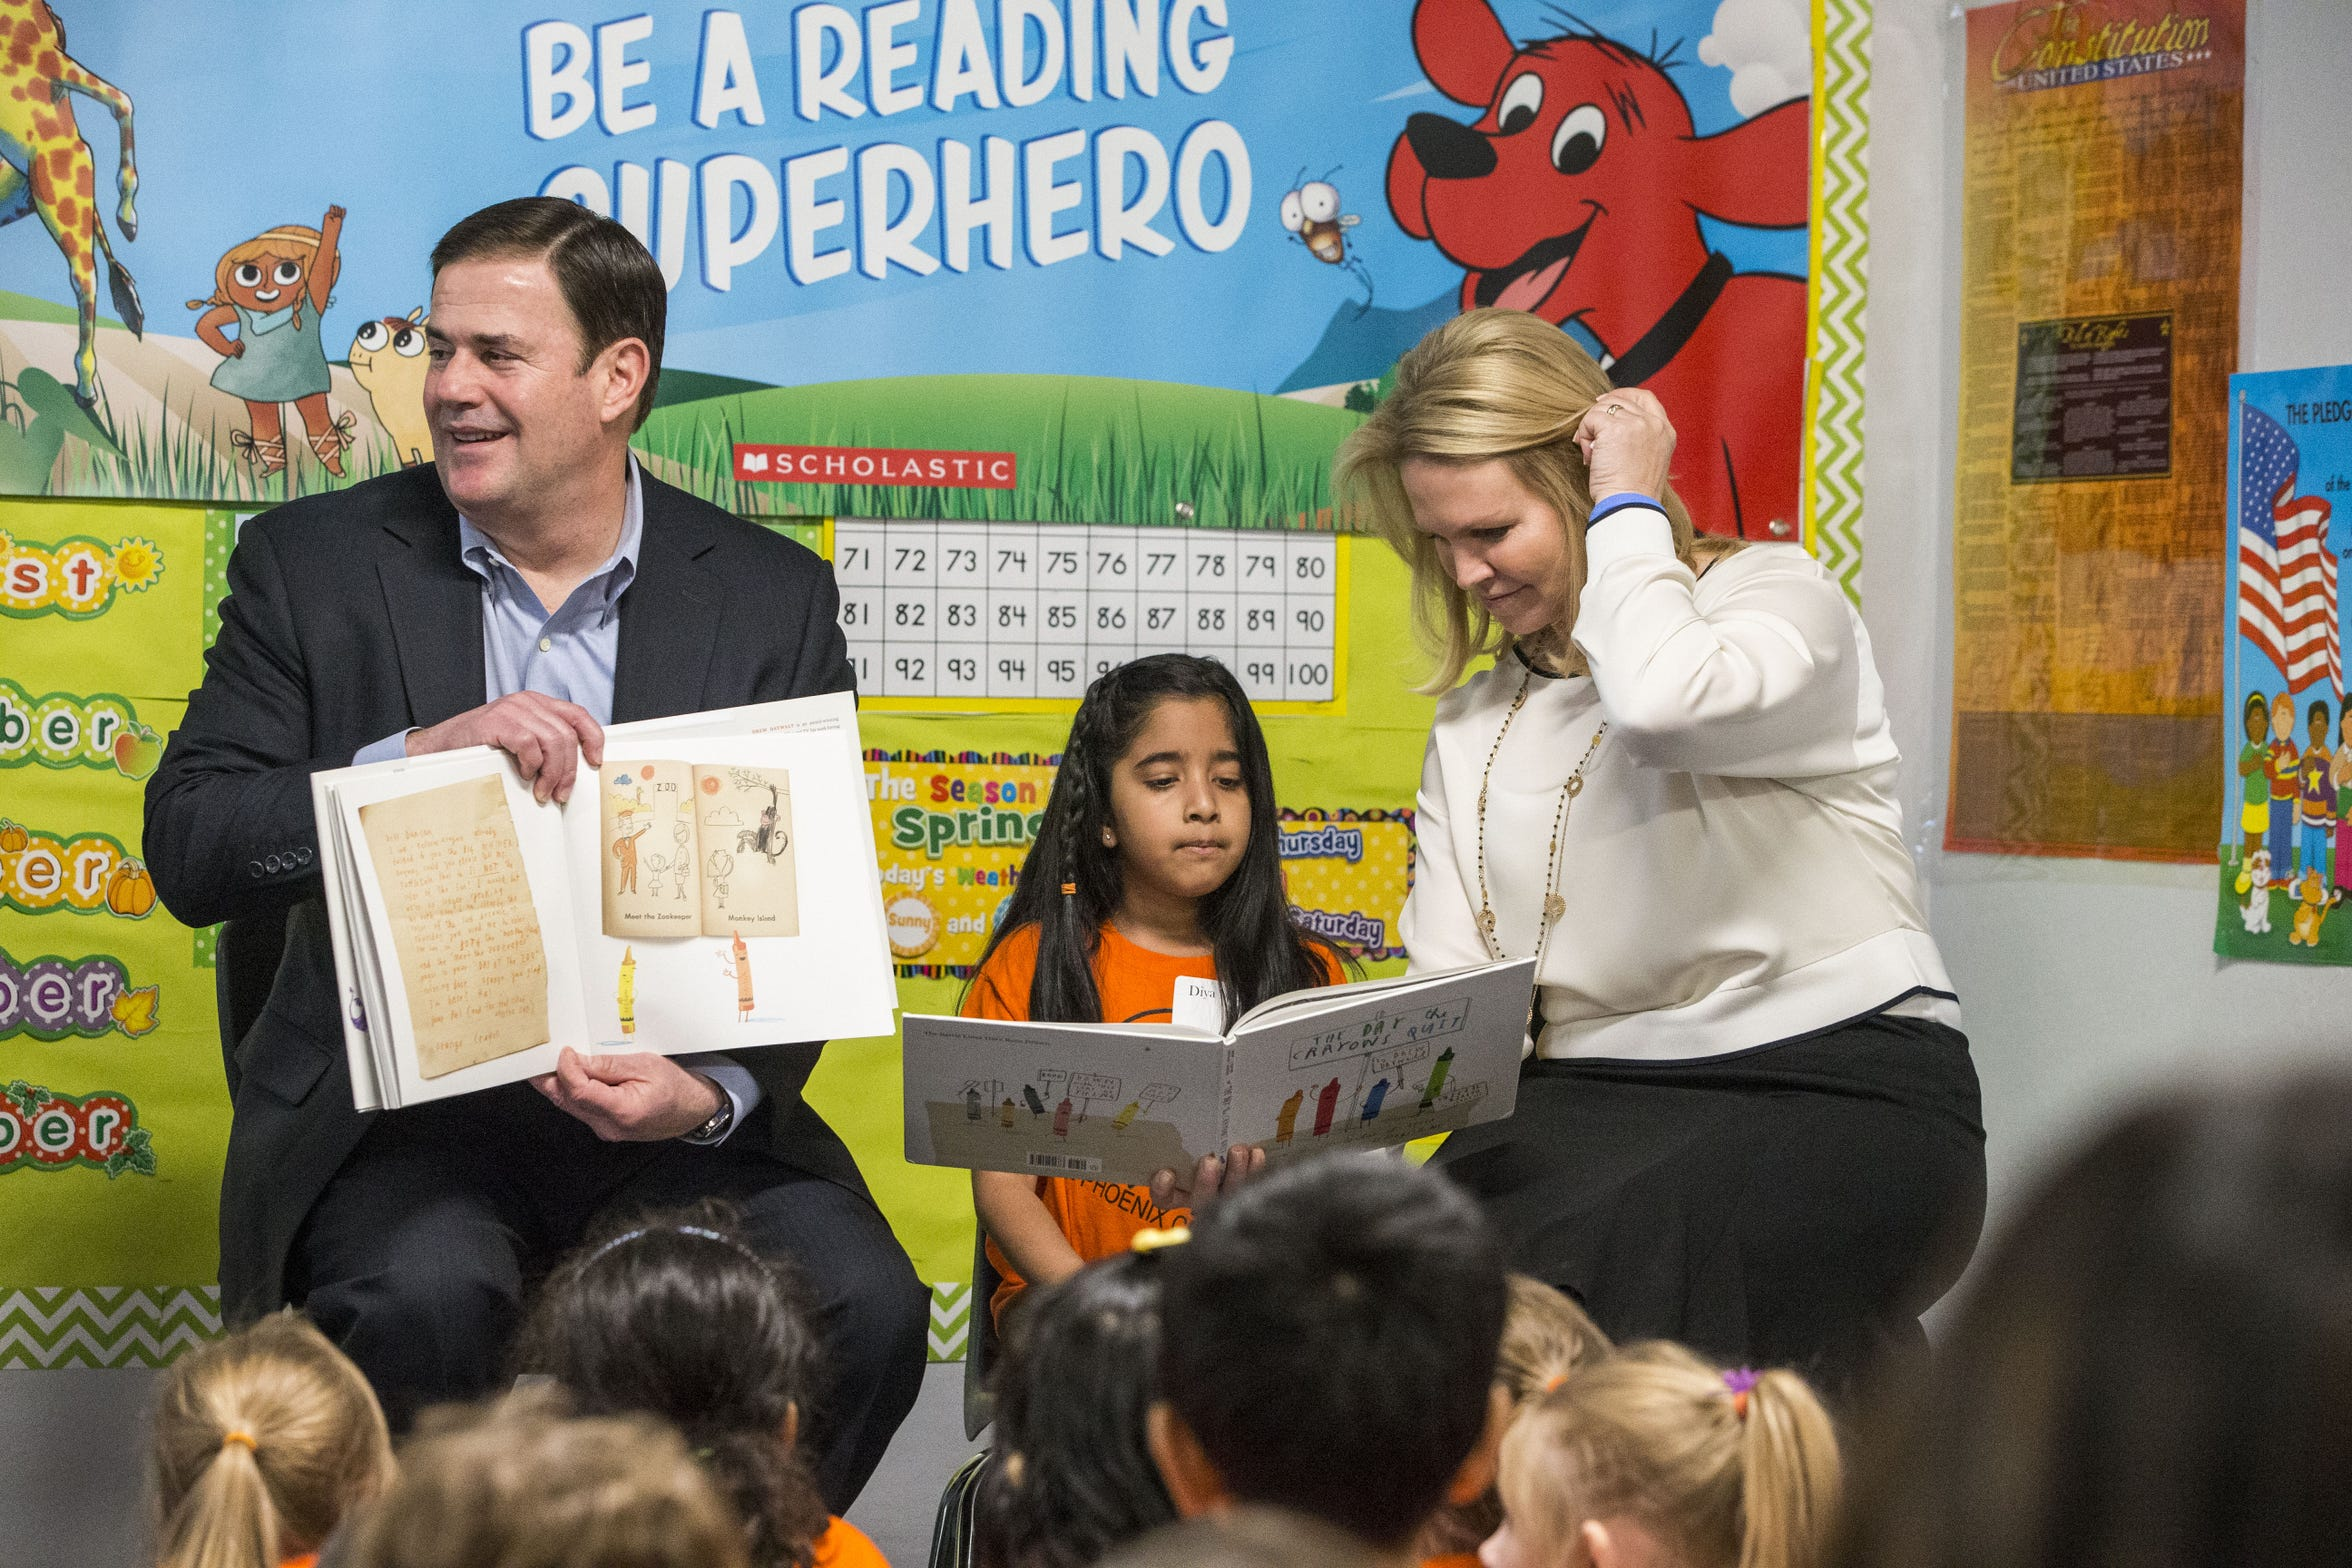 Gov. Doug Ducey and his wife, Angela,  read books with students at BASIS Phoenix Central on May 9, 2016.